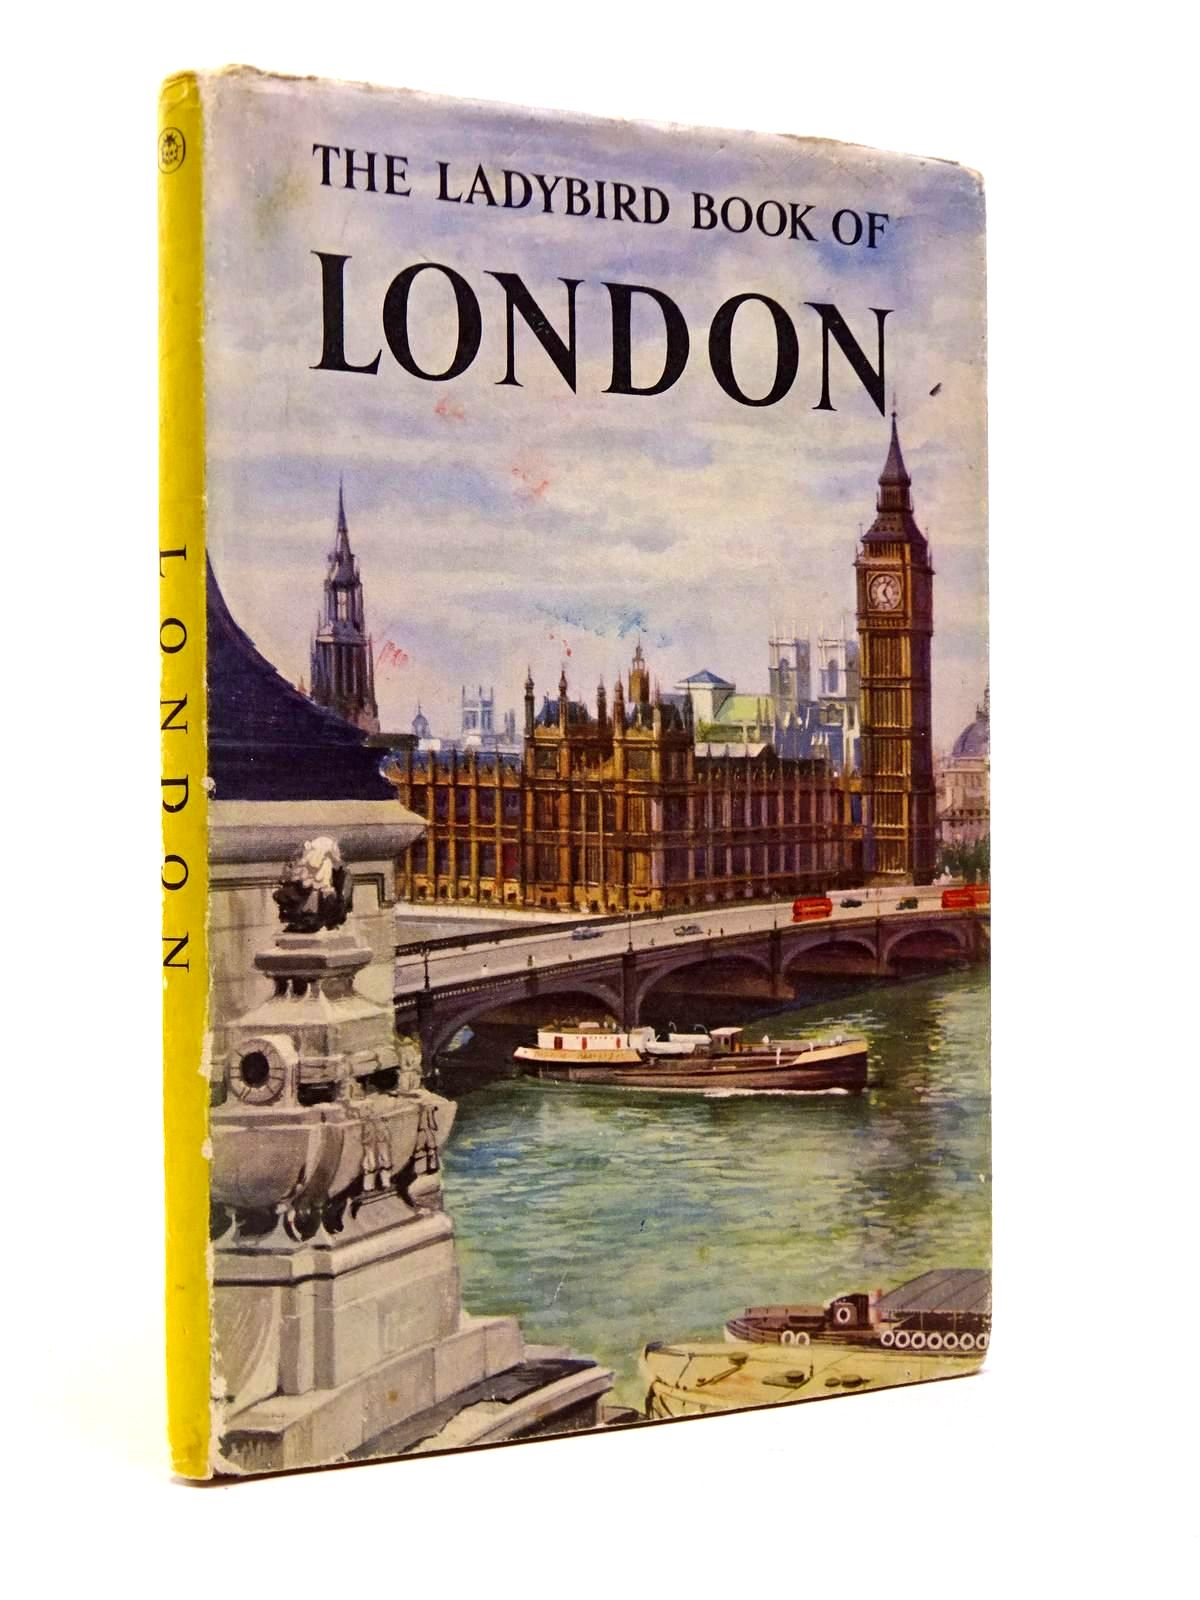 Photo of THE LADYBIRD BOOK OF LONDON written by Lewesdon, John illustrated by Berry, John published by Wills & Hepworth Ltd. (STOCK CODE: 2129833)  for sale by Stella & Rose's Books